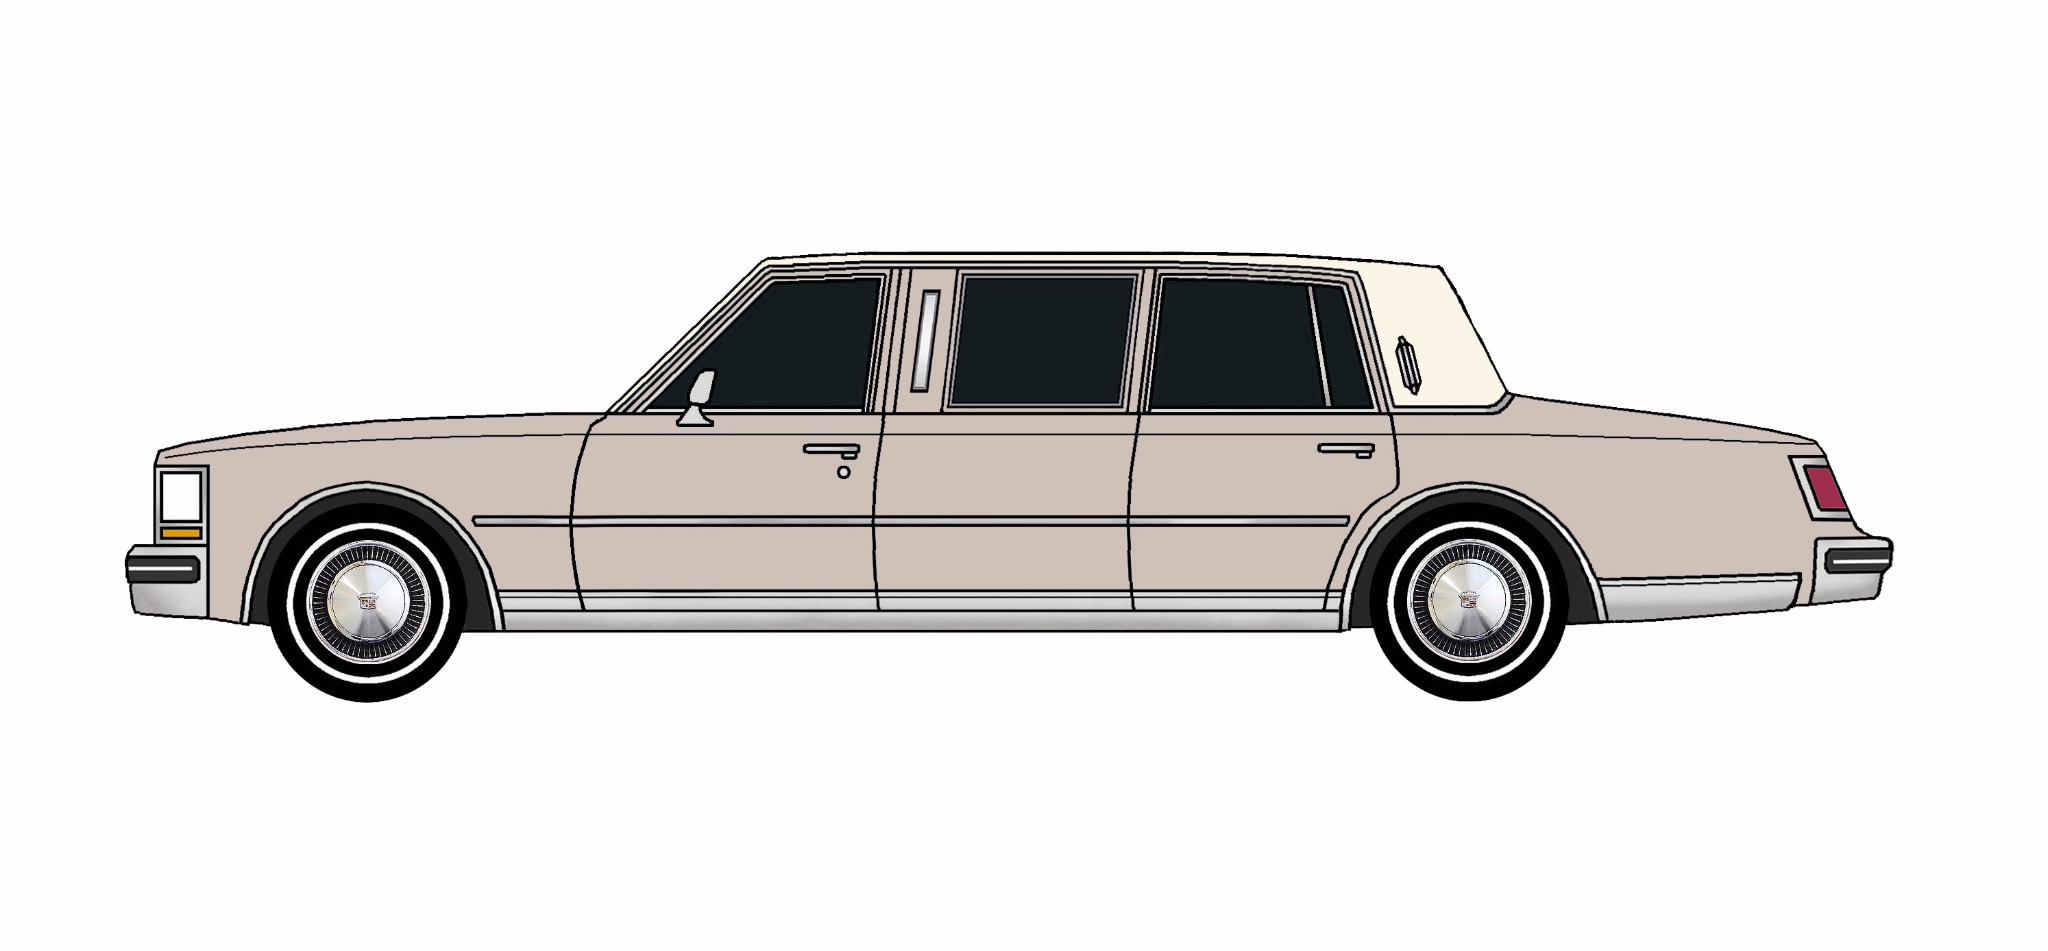 1978 Cadillac Seville Limo LAVENDER